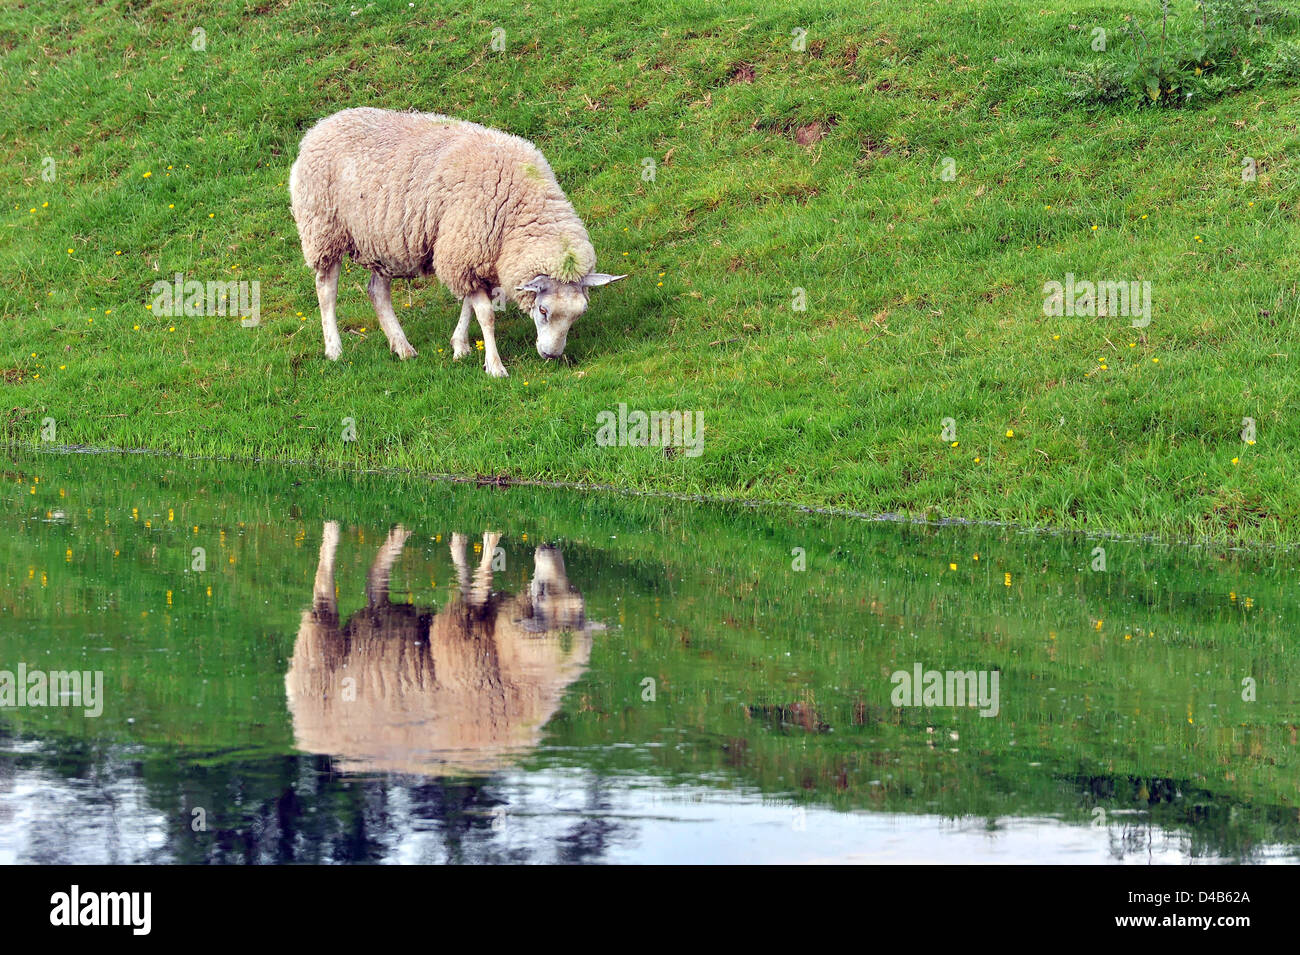 Sheep grazing by a stream, reflected in the water - Stock Image